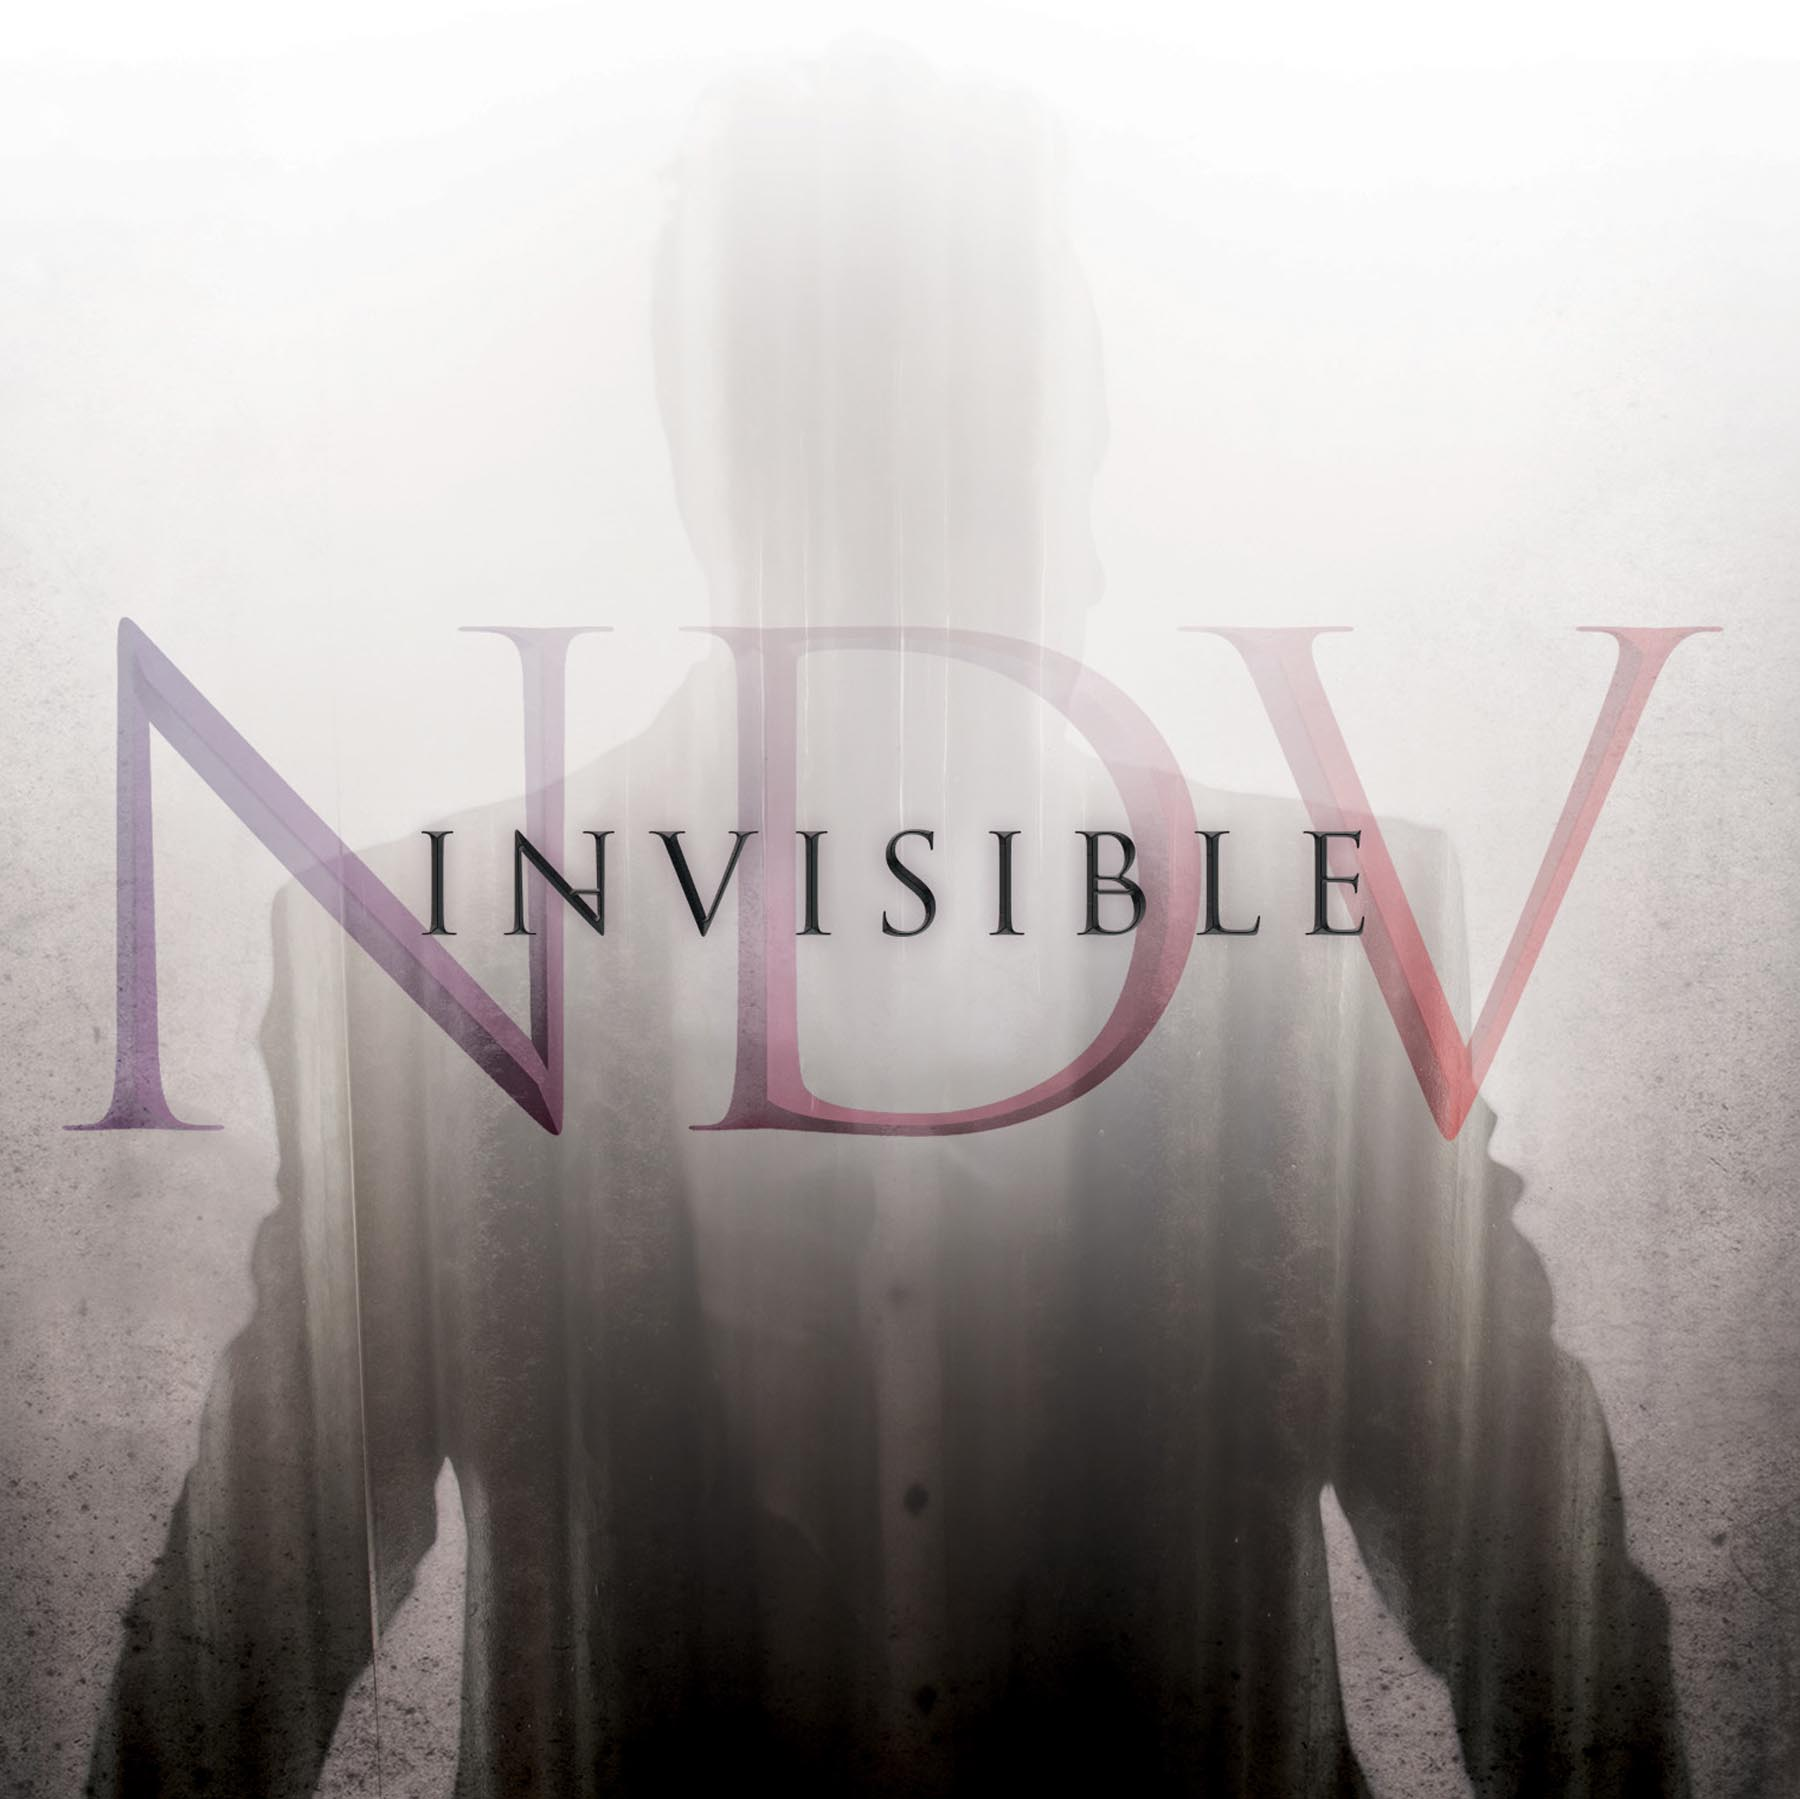 Invisible - NICK D'VIRGILIO